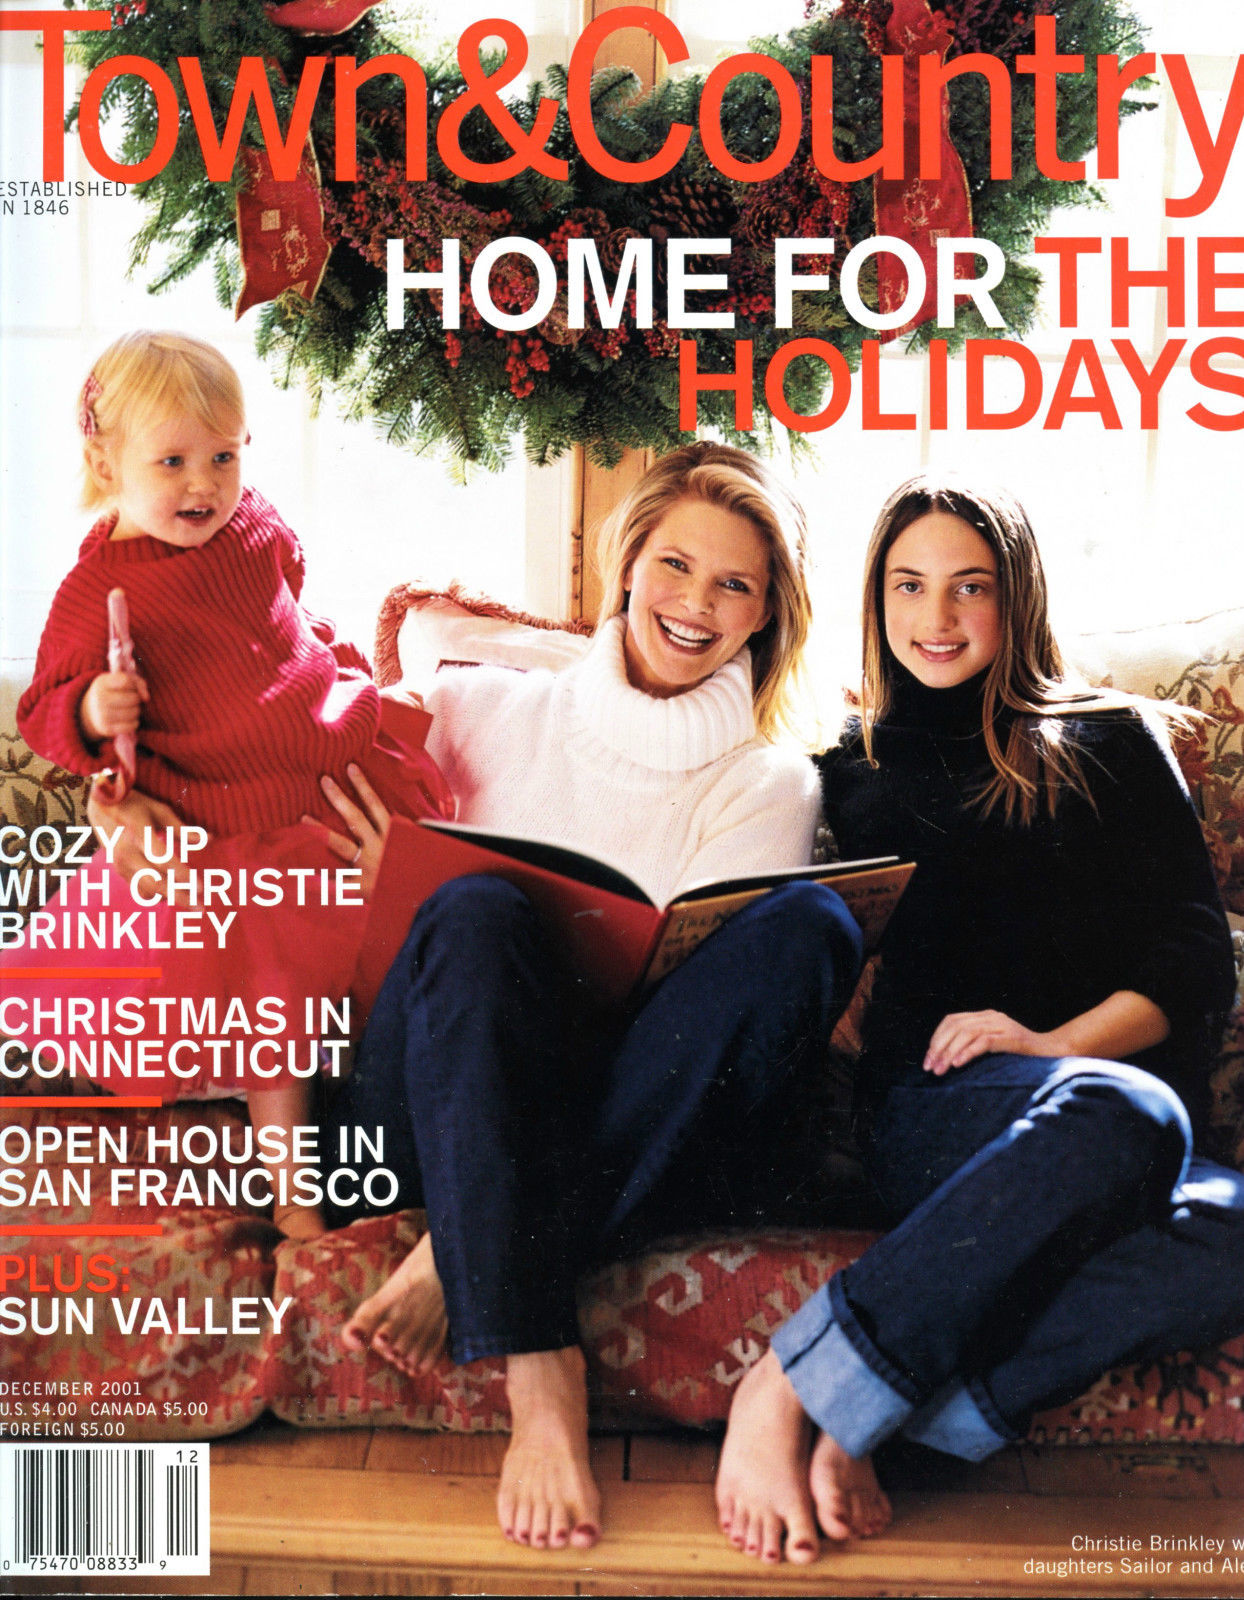 Town and Country magazine, December 2001